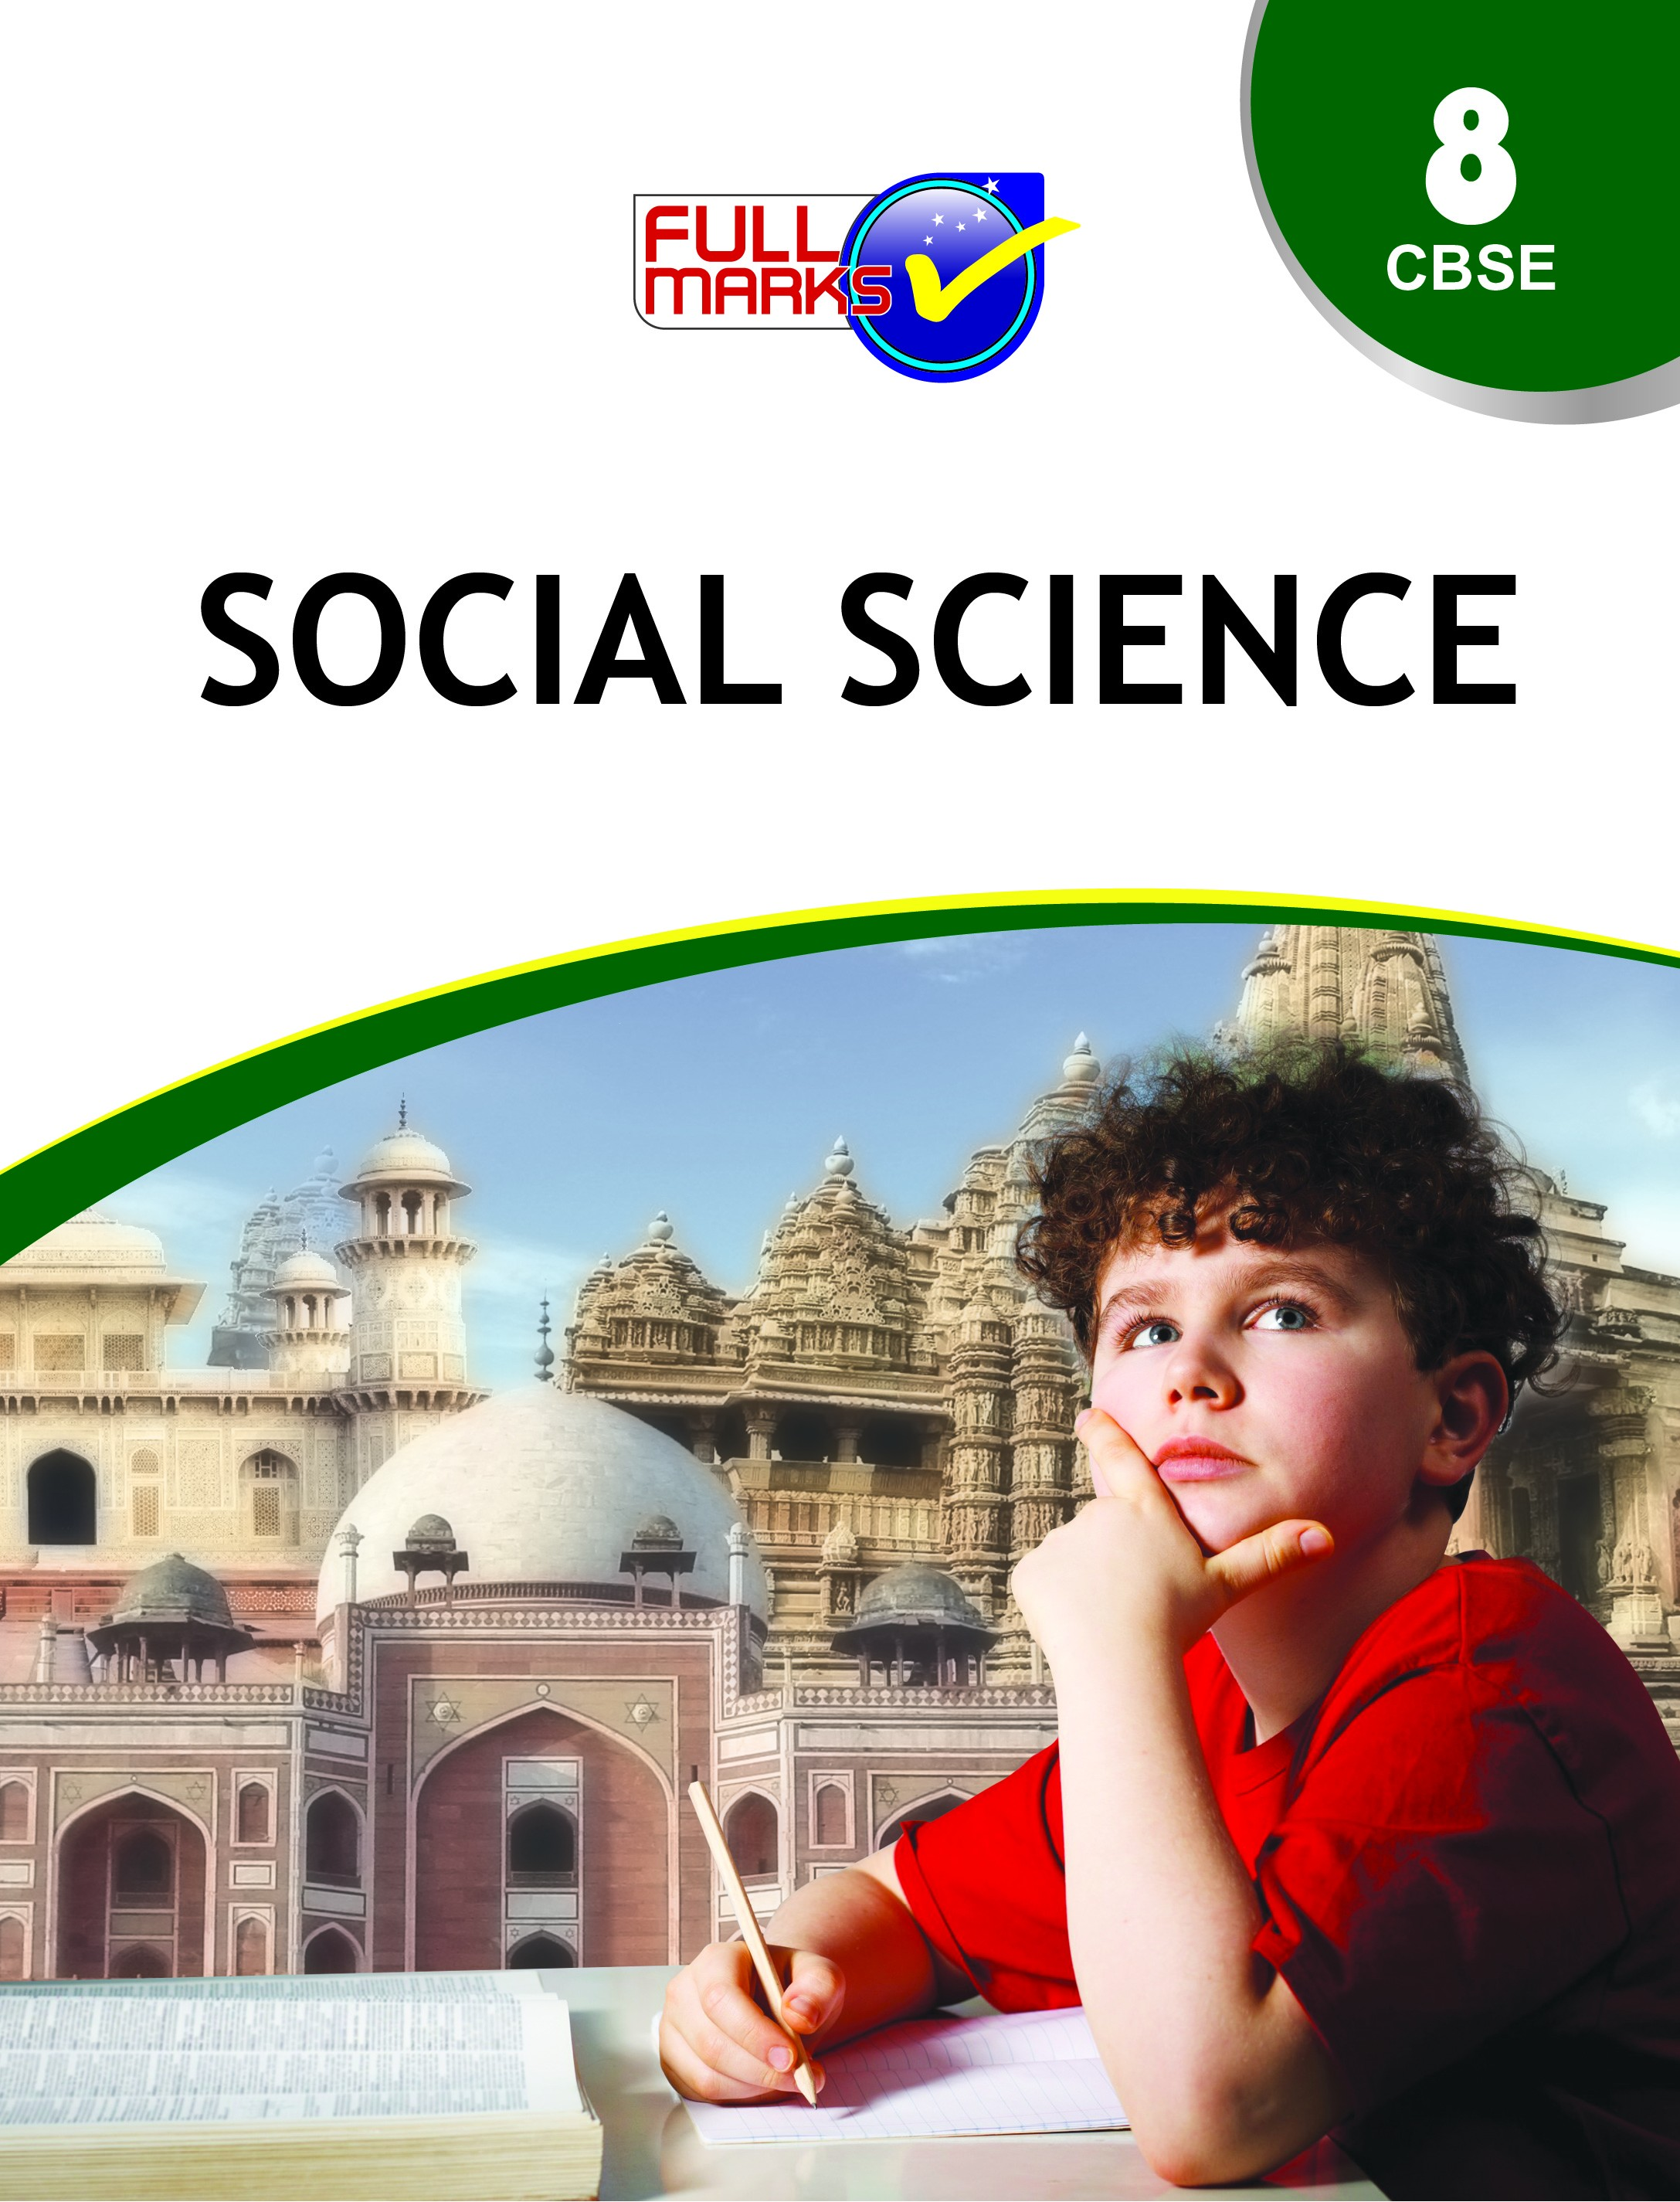 buy full marks guide of social science for class 8 online at rh raajkart com full marks guide class 8 dav science full marks guide class 8 social science in hindi